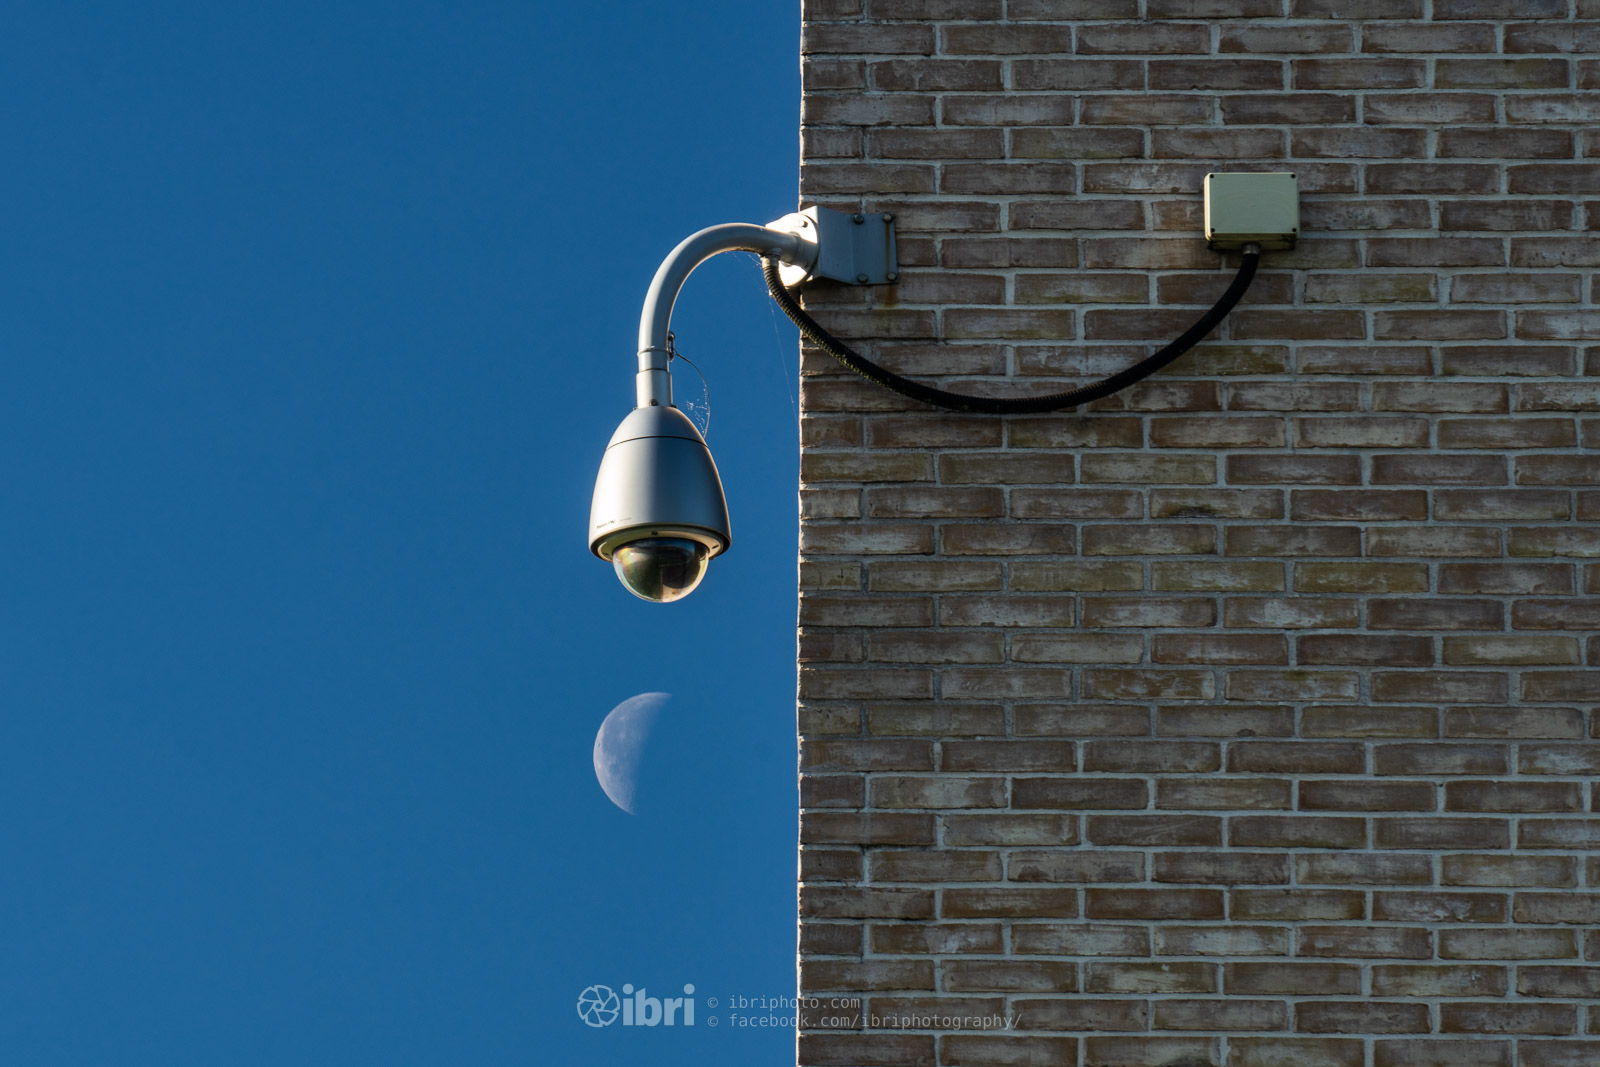 Waning Moon under surveillance.   iBri Photography  •  Facebook  •  Instagram  •  Twitter